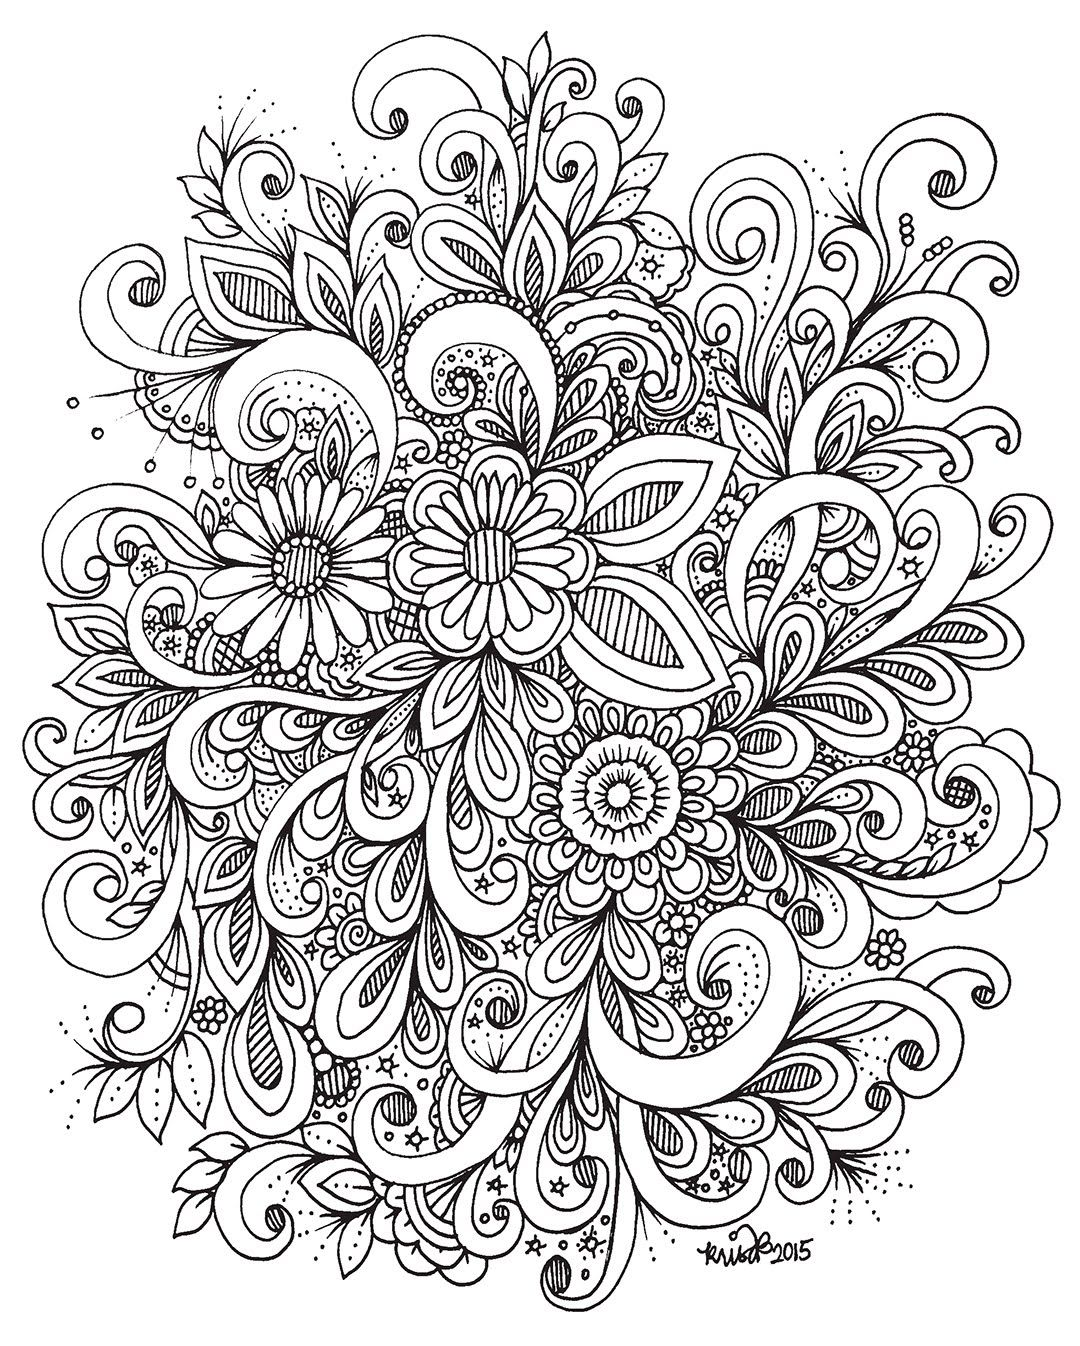 Maxresdefault Jpg 1080 1346 Flower Drawing 3 Canvas Art Doodle Drawings